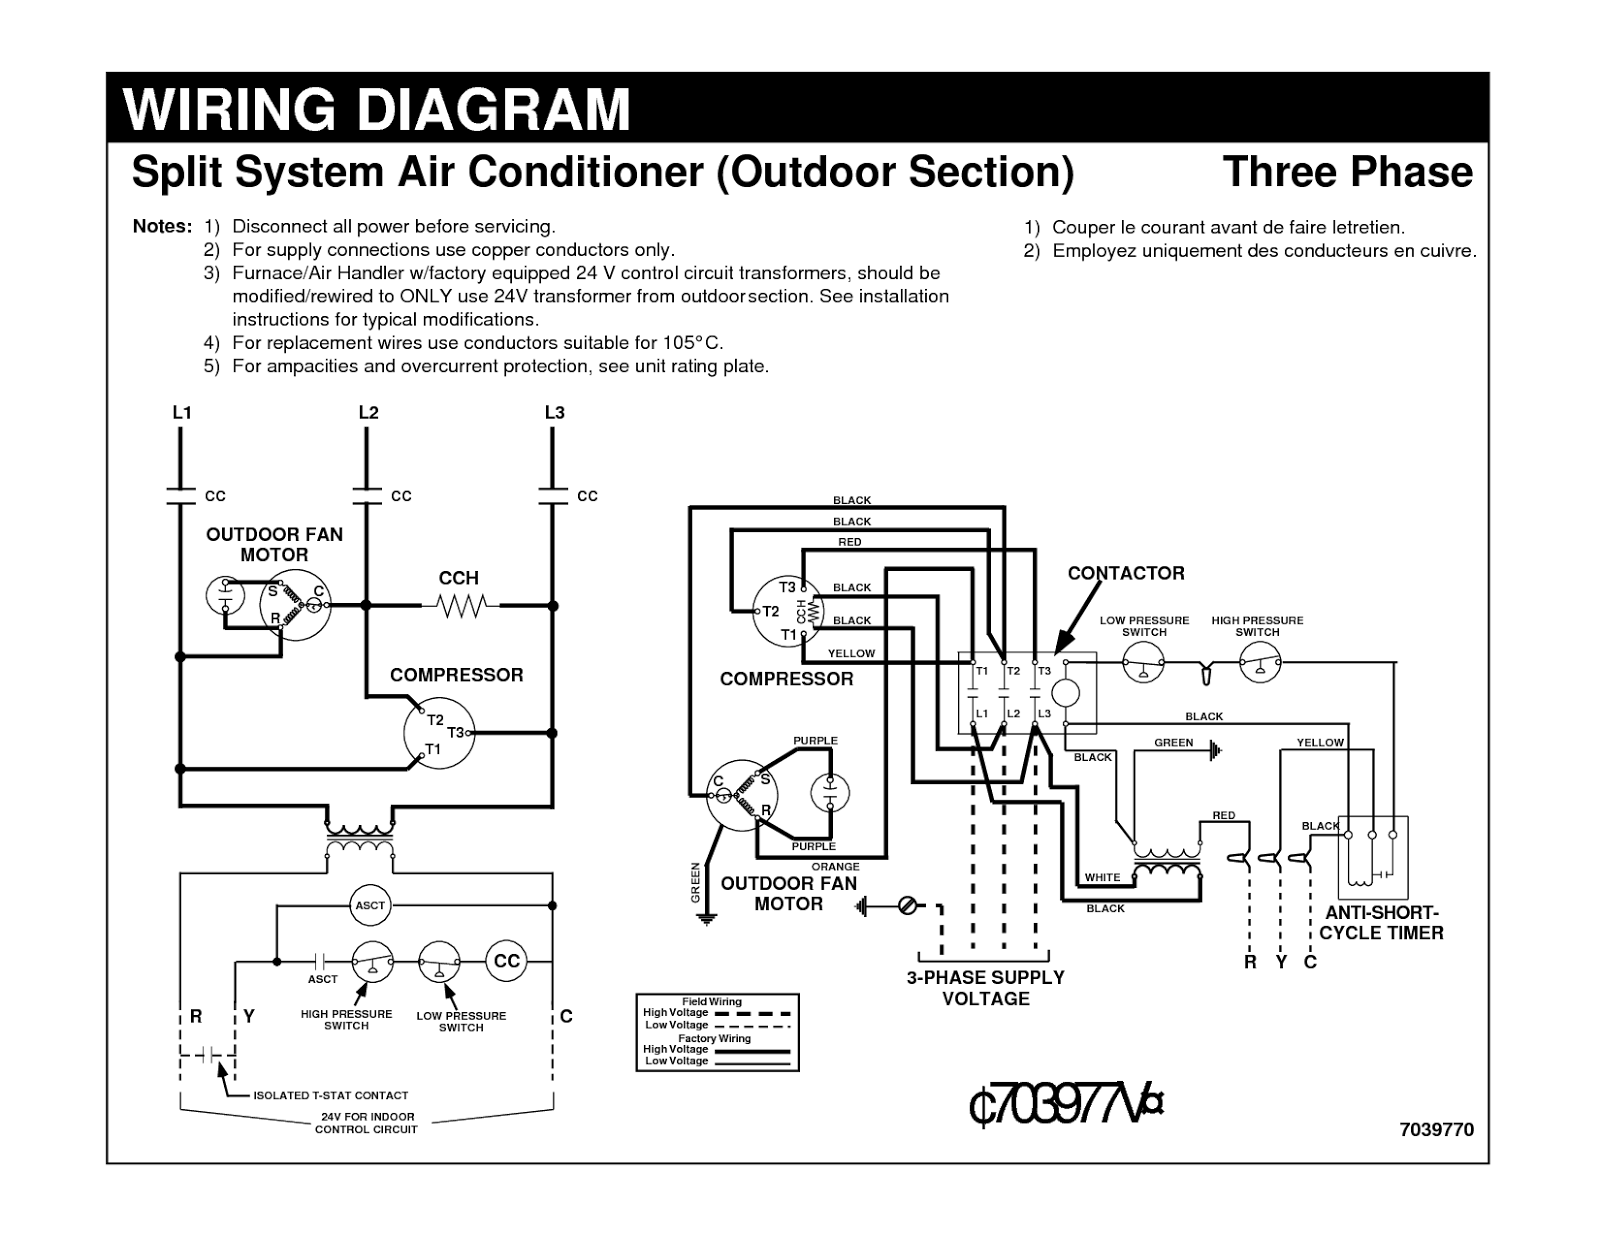 wiring+diagram+in+the+user+manual hvac wiring diagram payne hvac wiring diagrams \u2022 wiring diagrams ac split system wiring diagram at mifinder.co